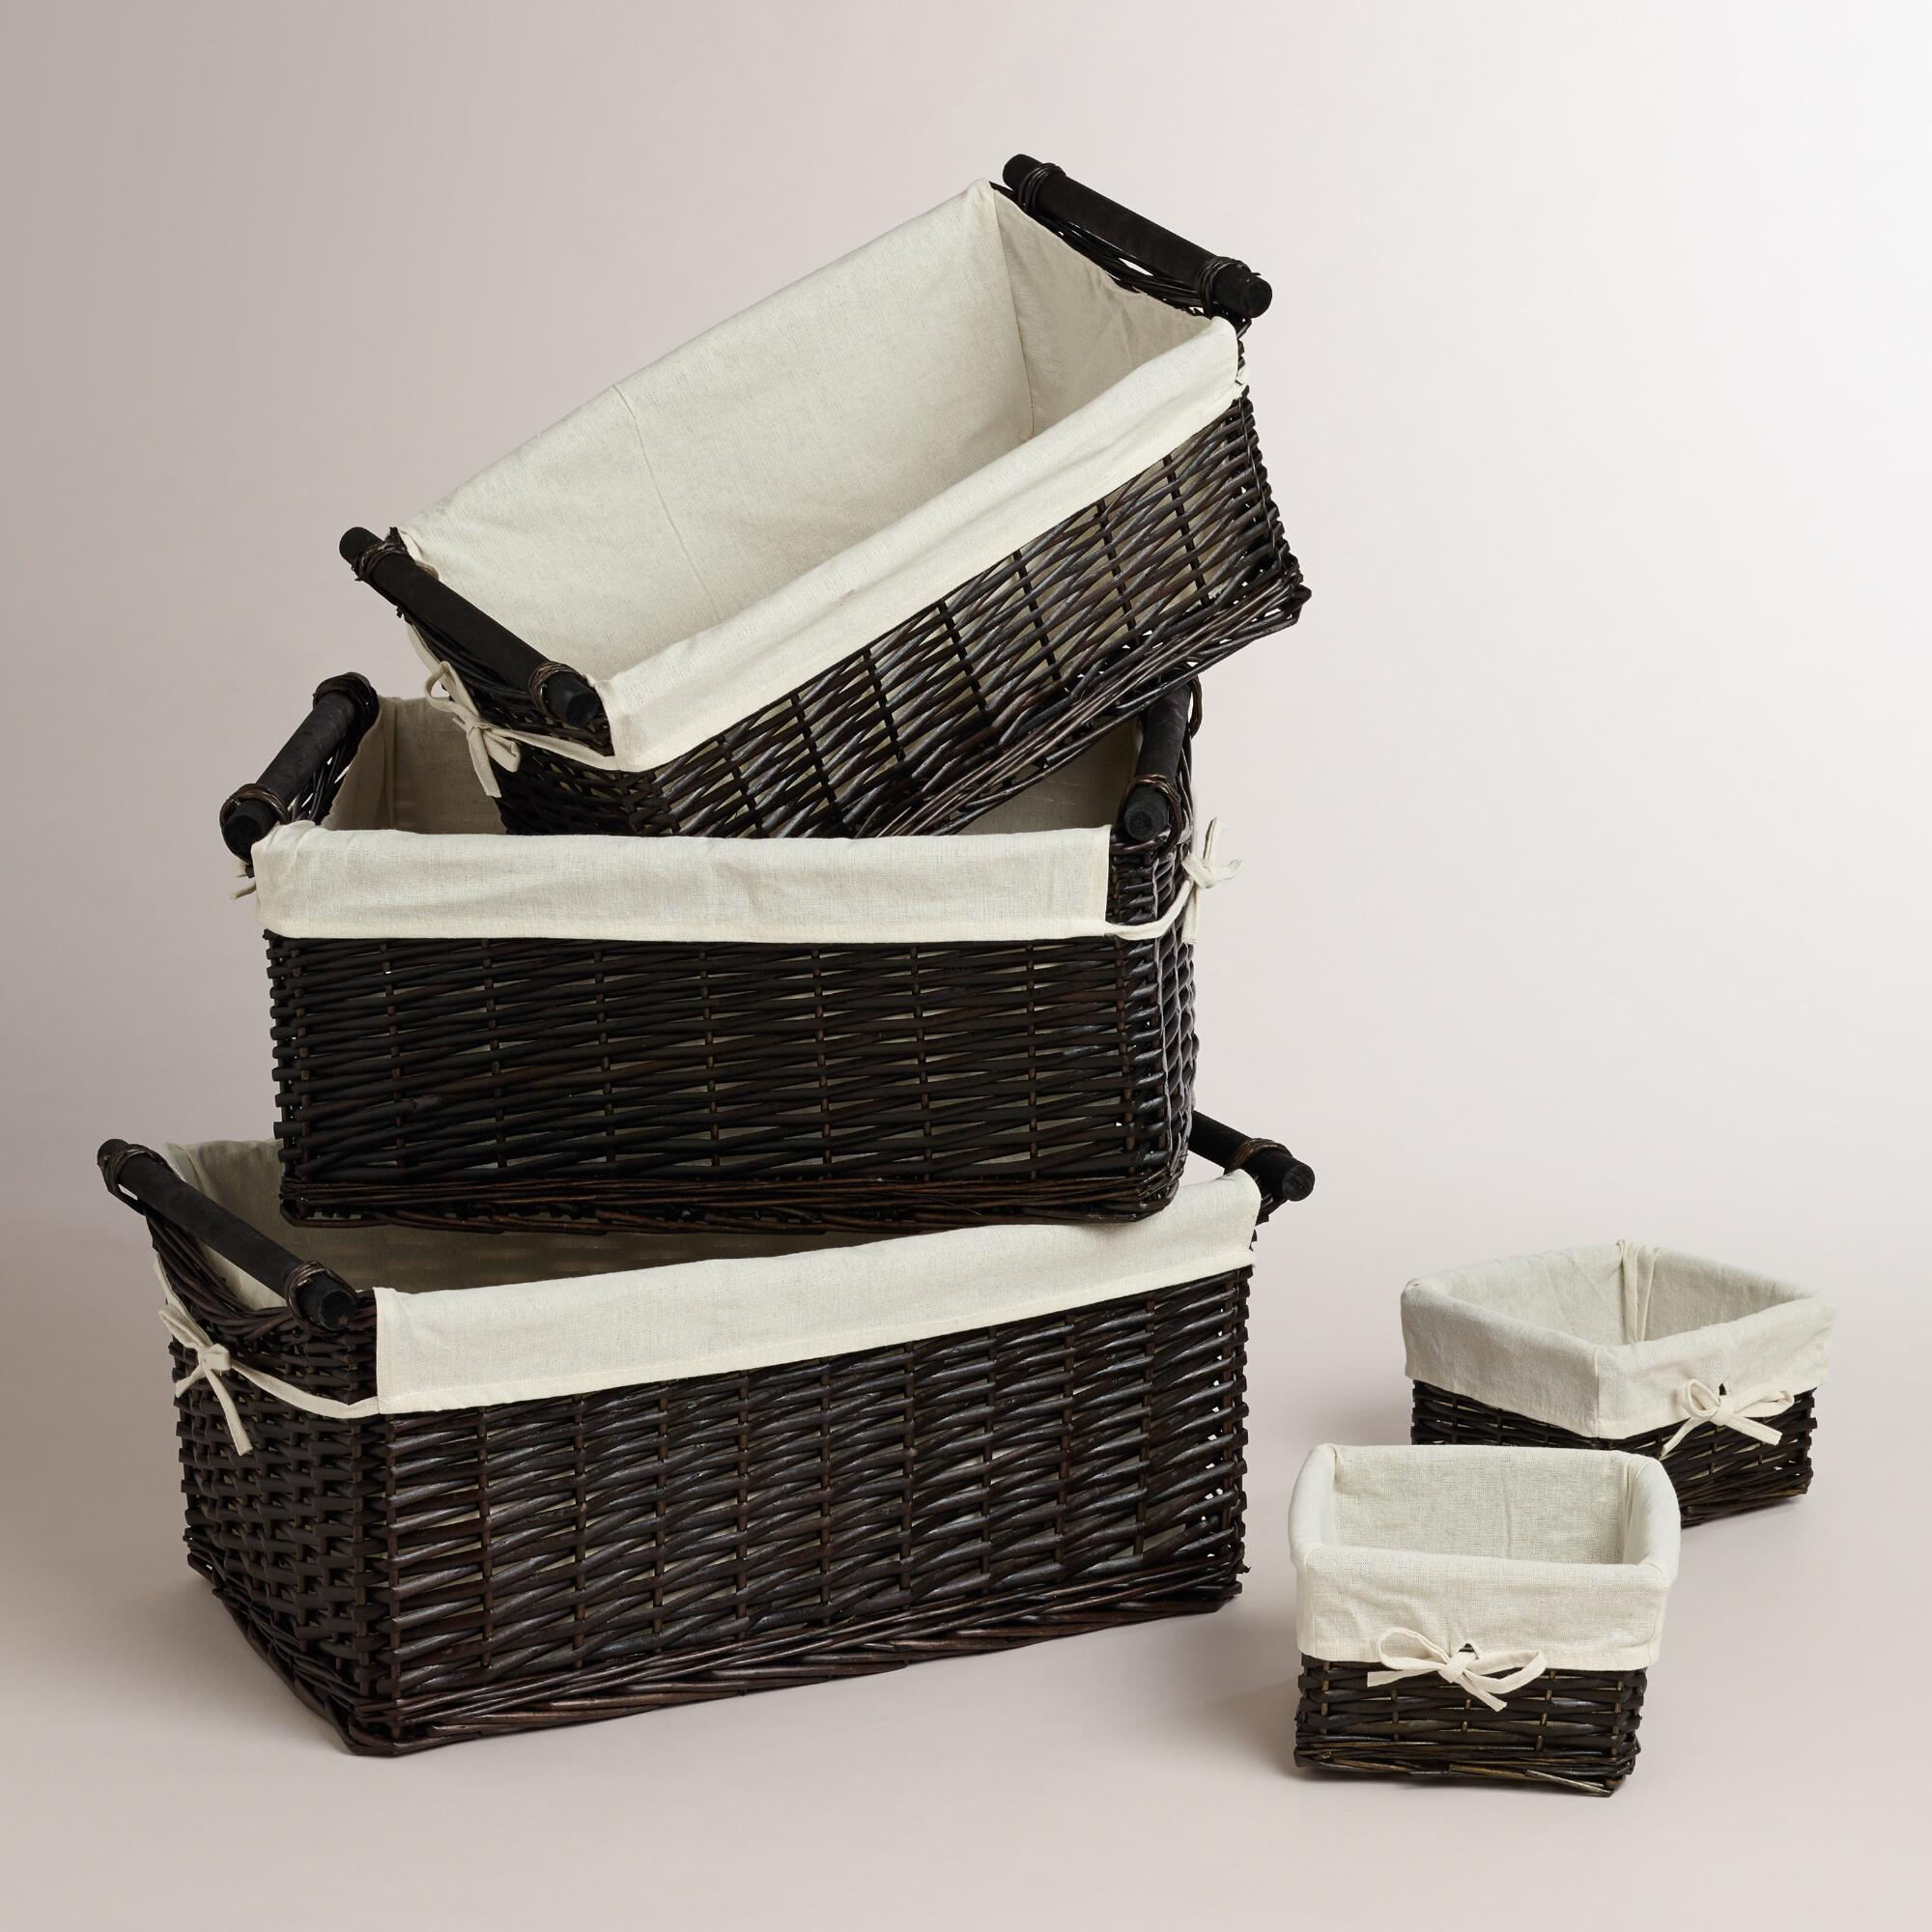 Espresso Isabella Baskets: Brown - Natural Fiber - Exsmall,setof3 by World Market Exsmall,setof3